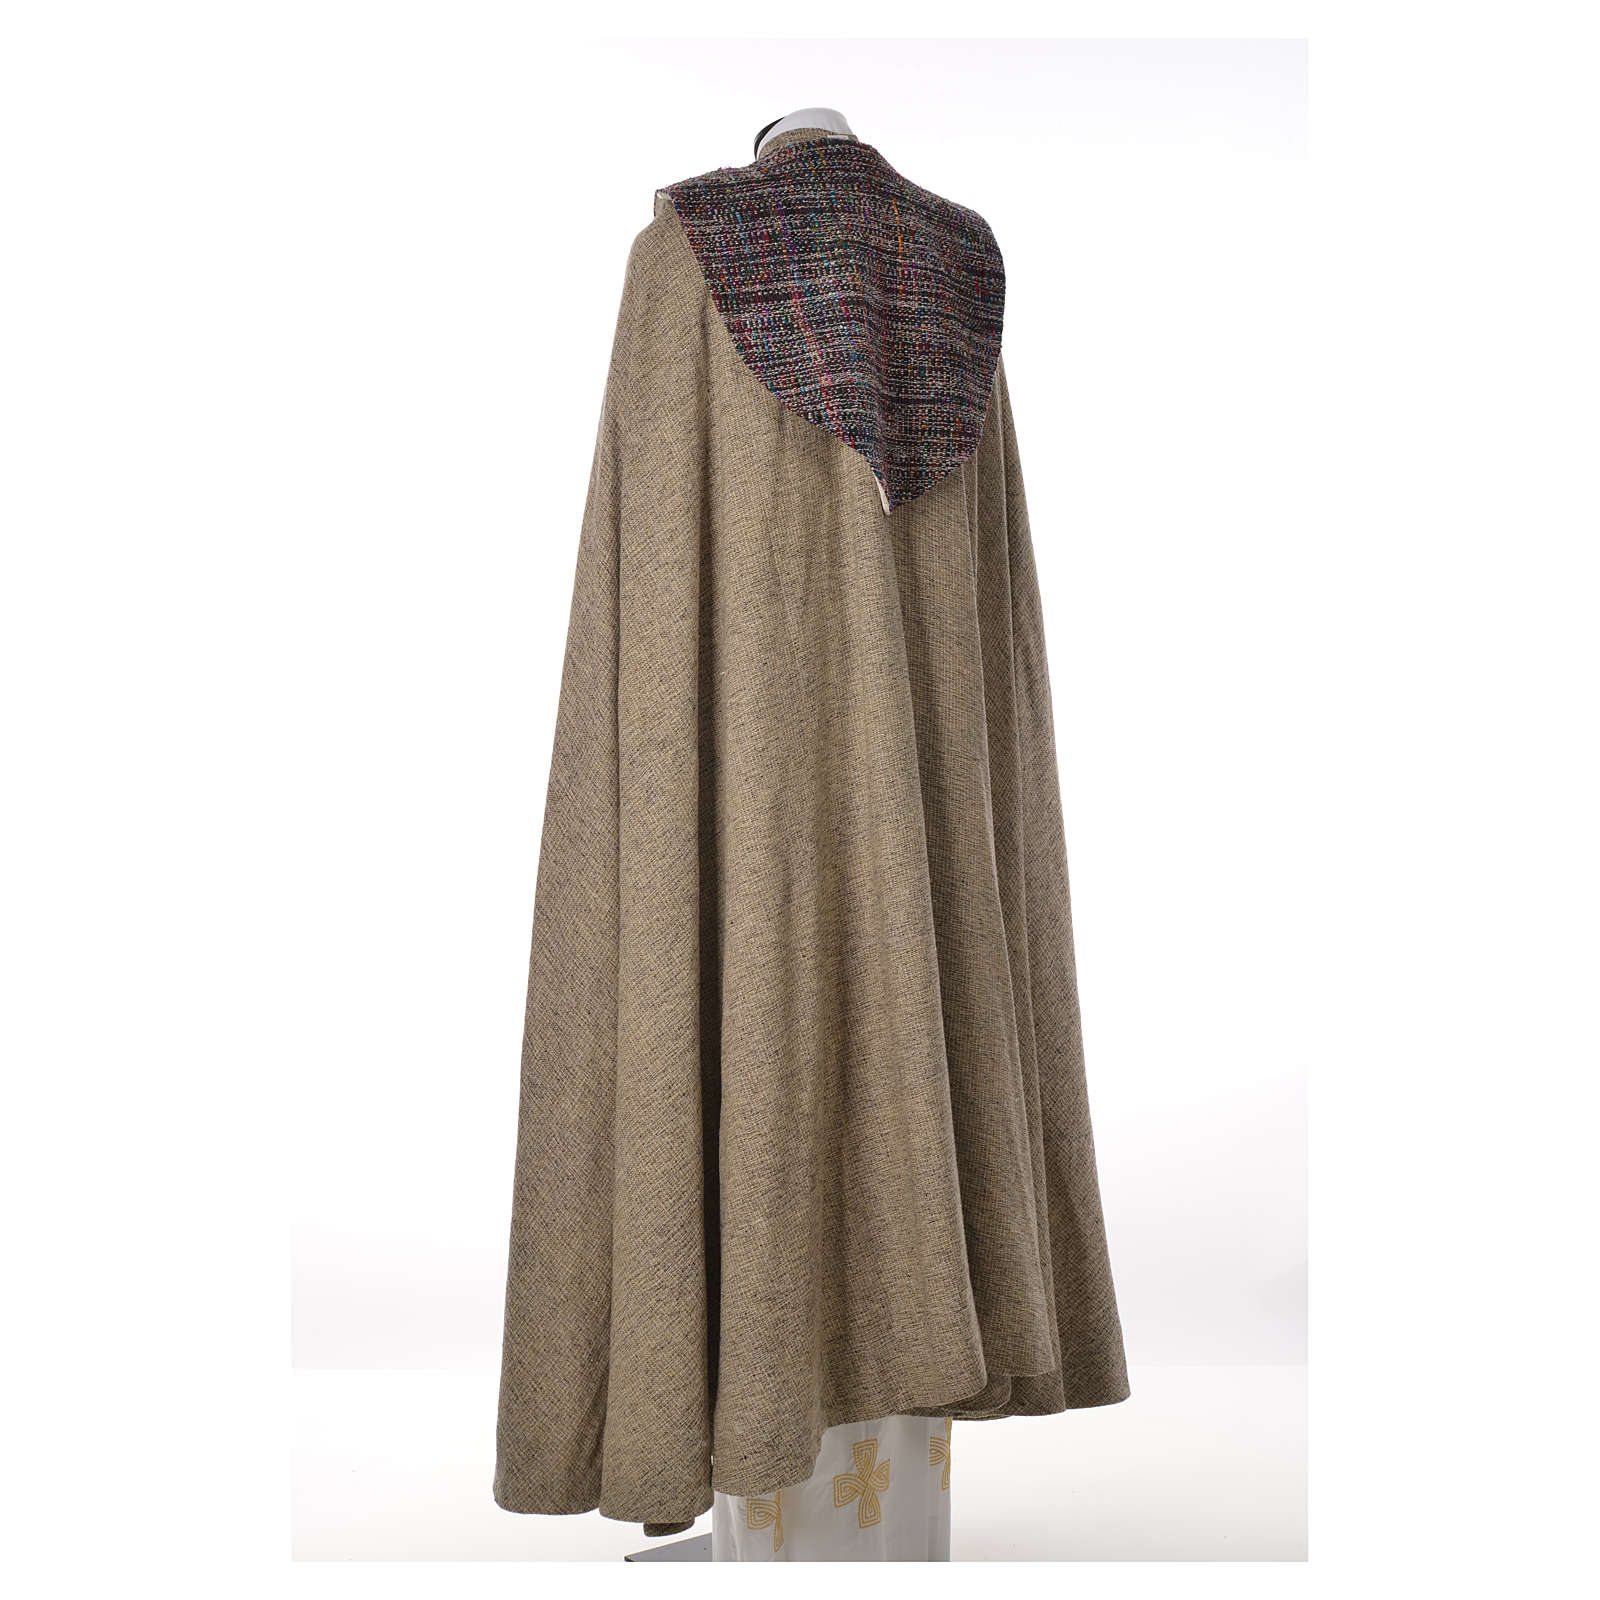 Franciscan cope 50% cotton 25% silk and 25% viscose 4